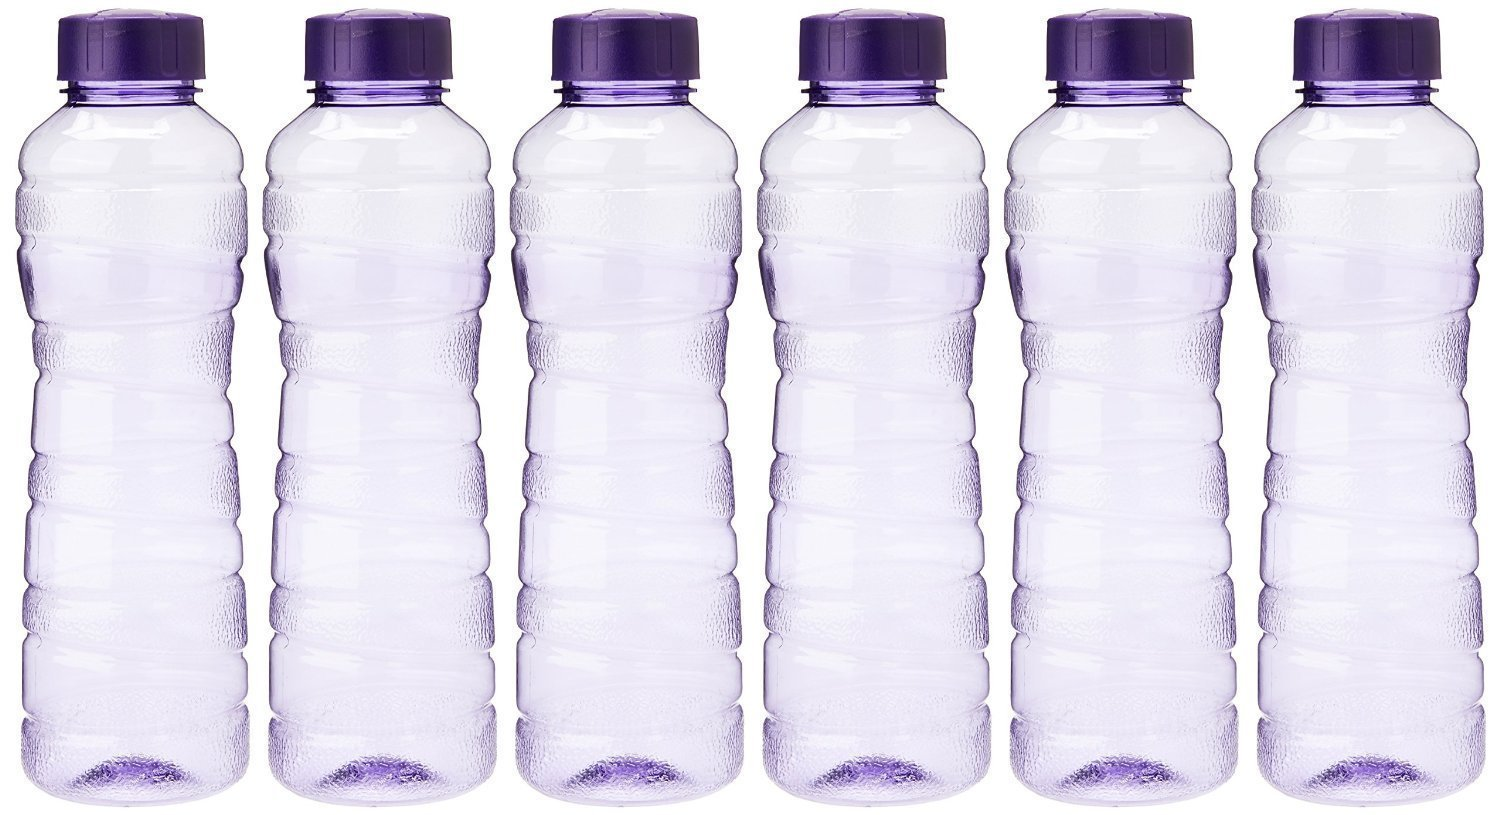 Princeware Victoria PET Fridge Bottle, 975 ml, Set of 6